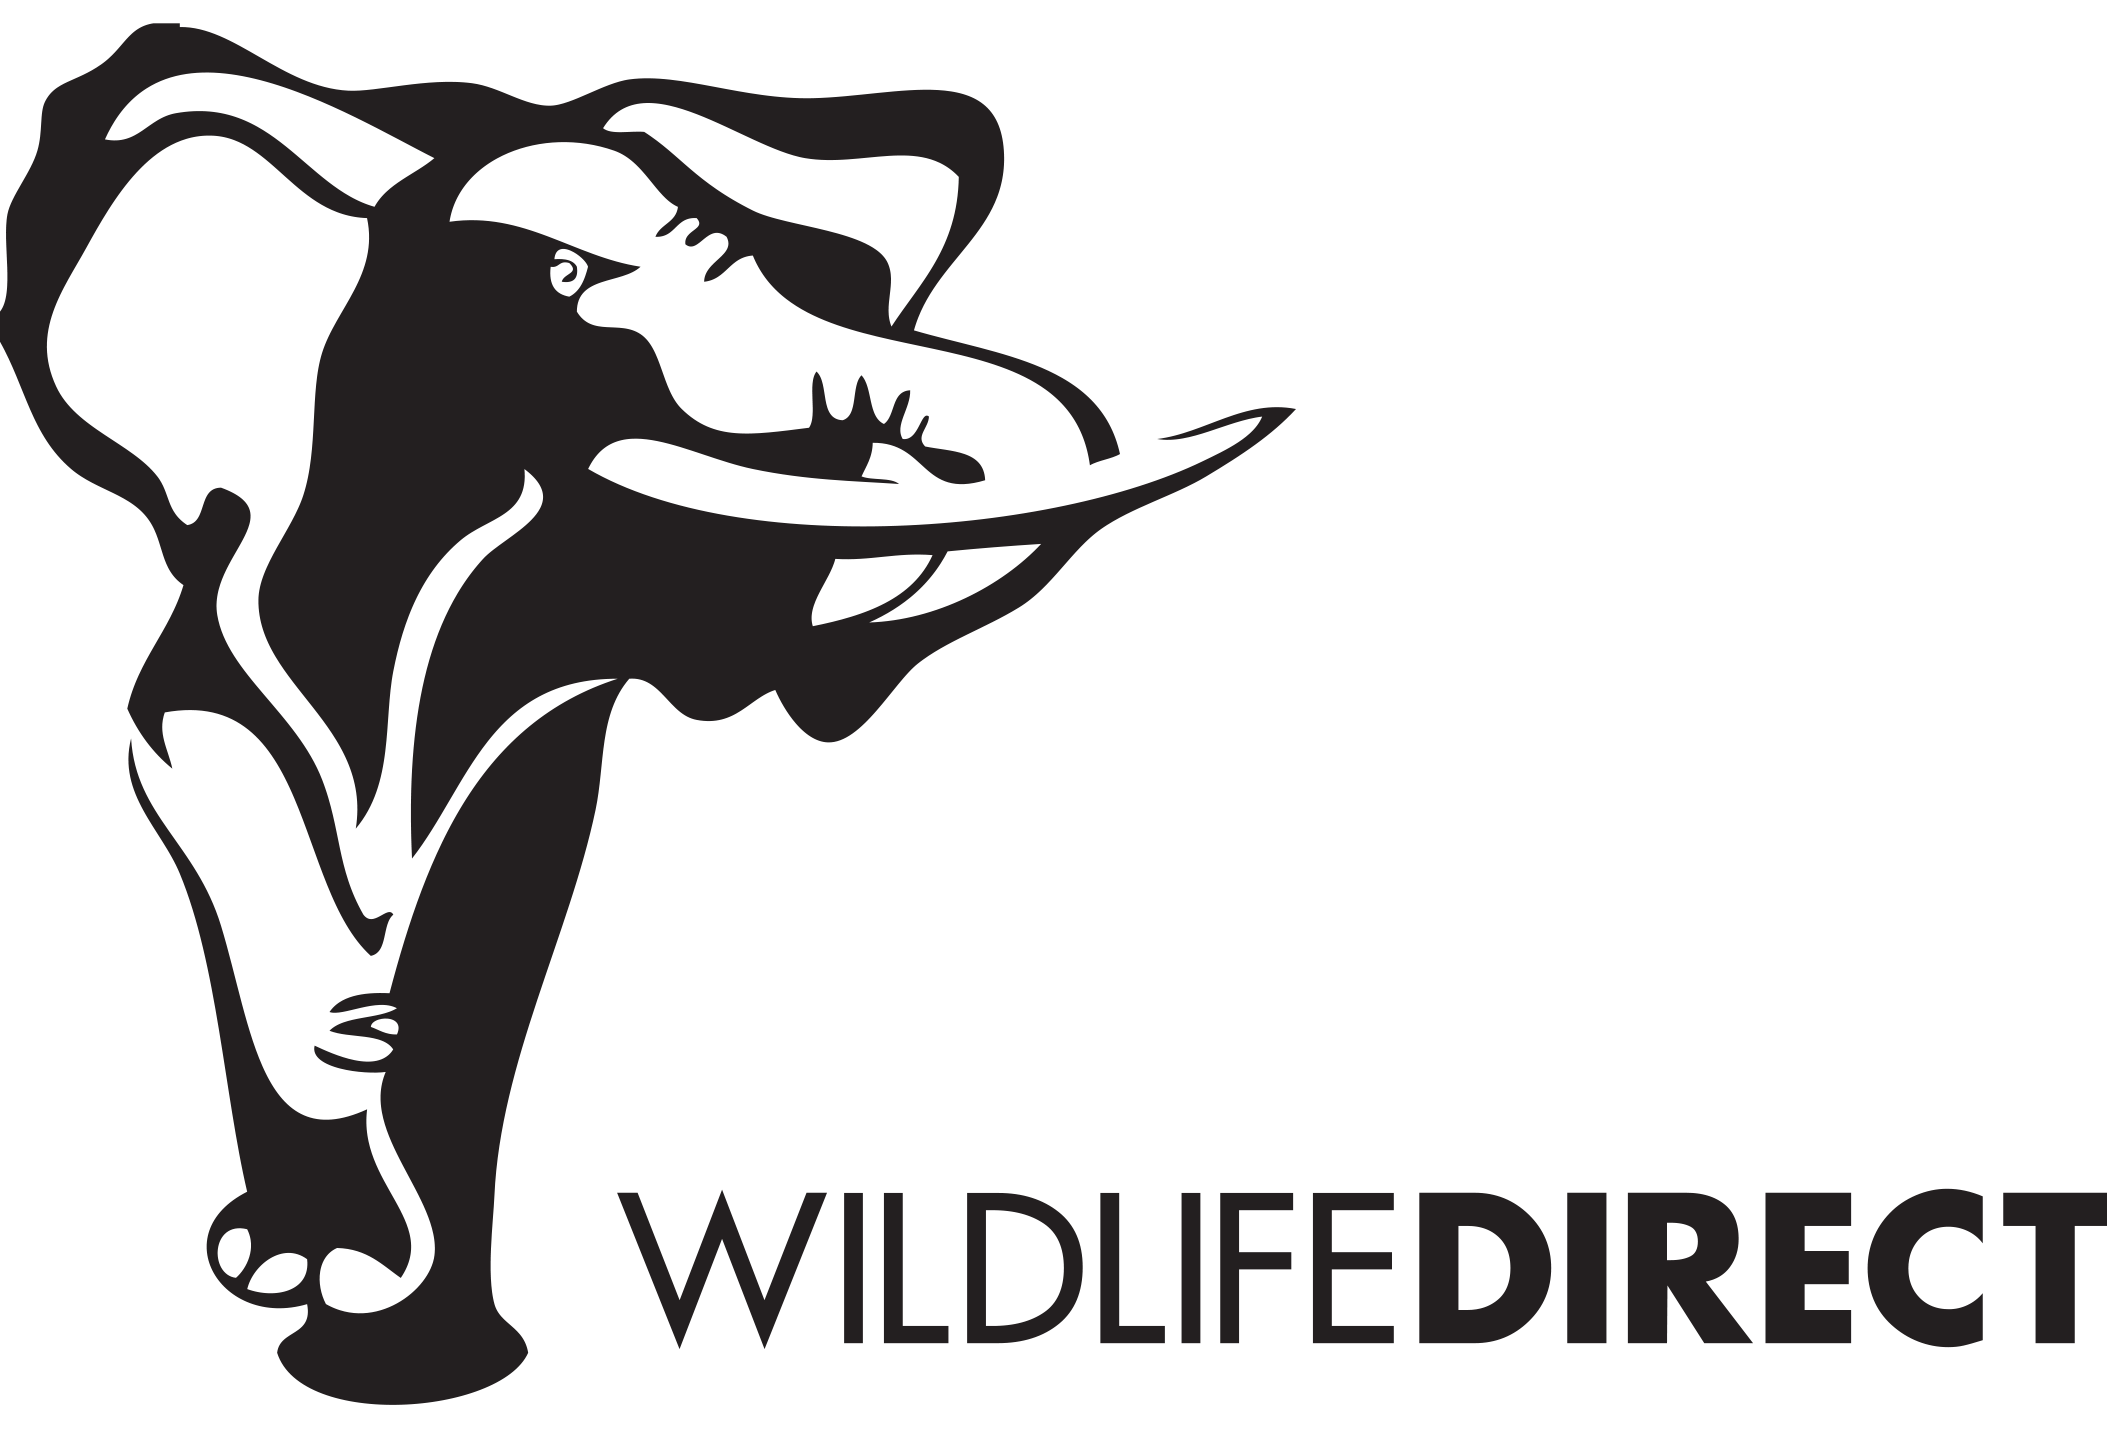 WildlifeDirect logo